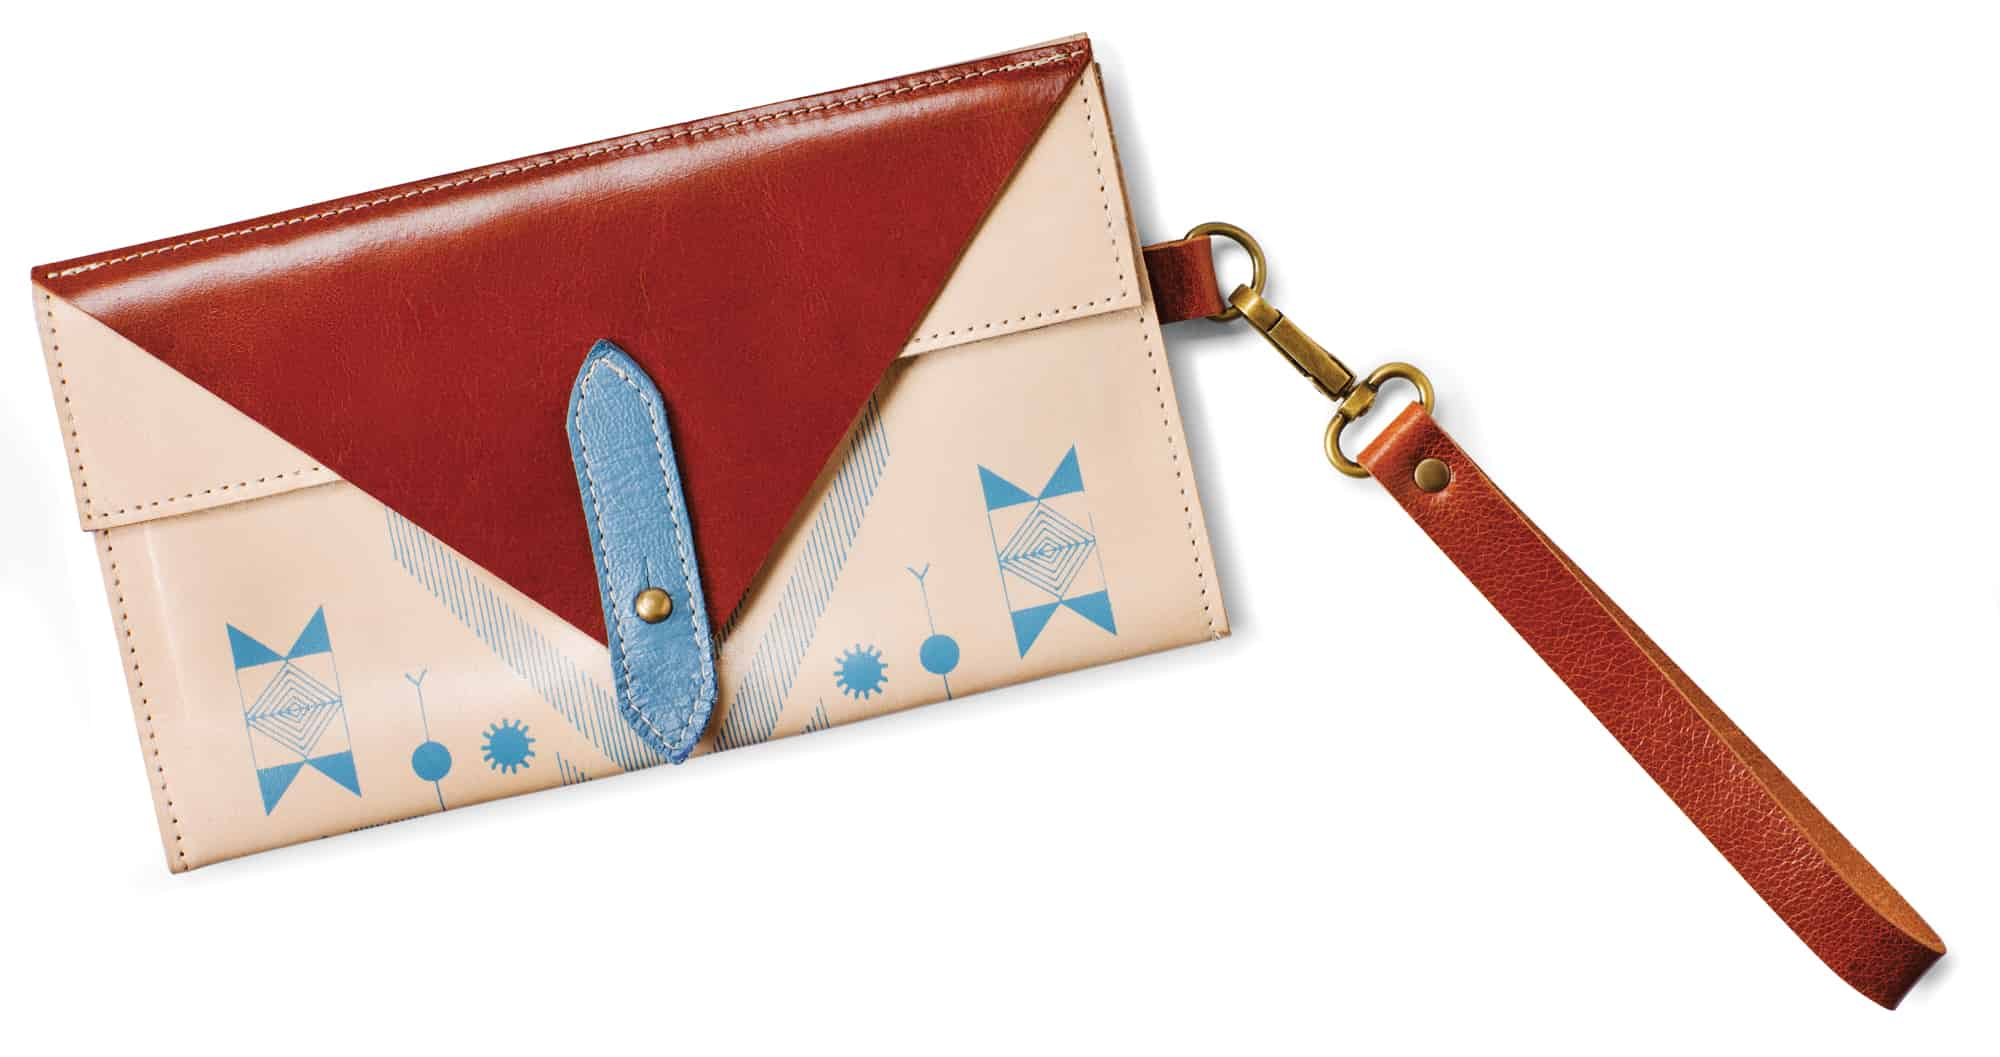 Wallet $105 by Catherine Cournoyer and Jinny Lévesque